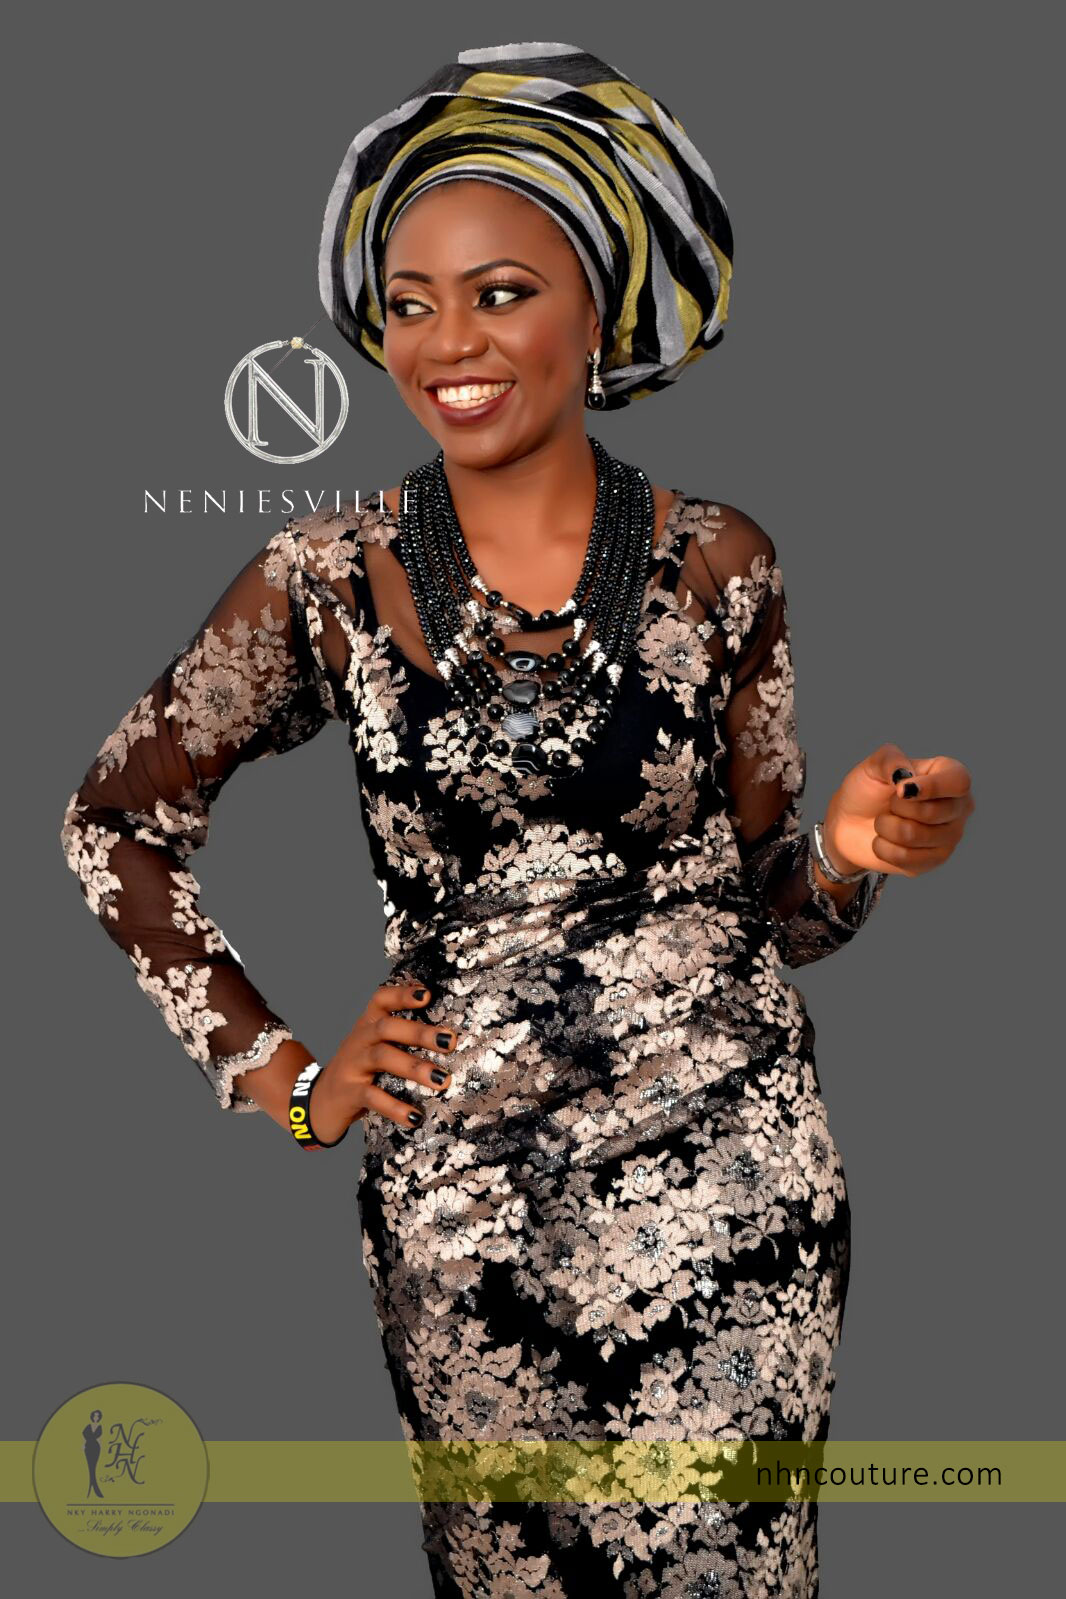 Neniesville-Jewelry_Nigerian-Attire-by-NHN-Couture_3